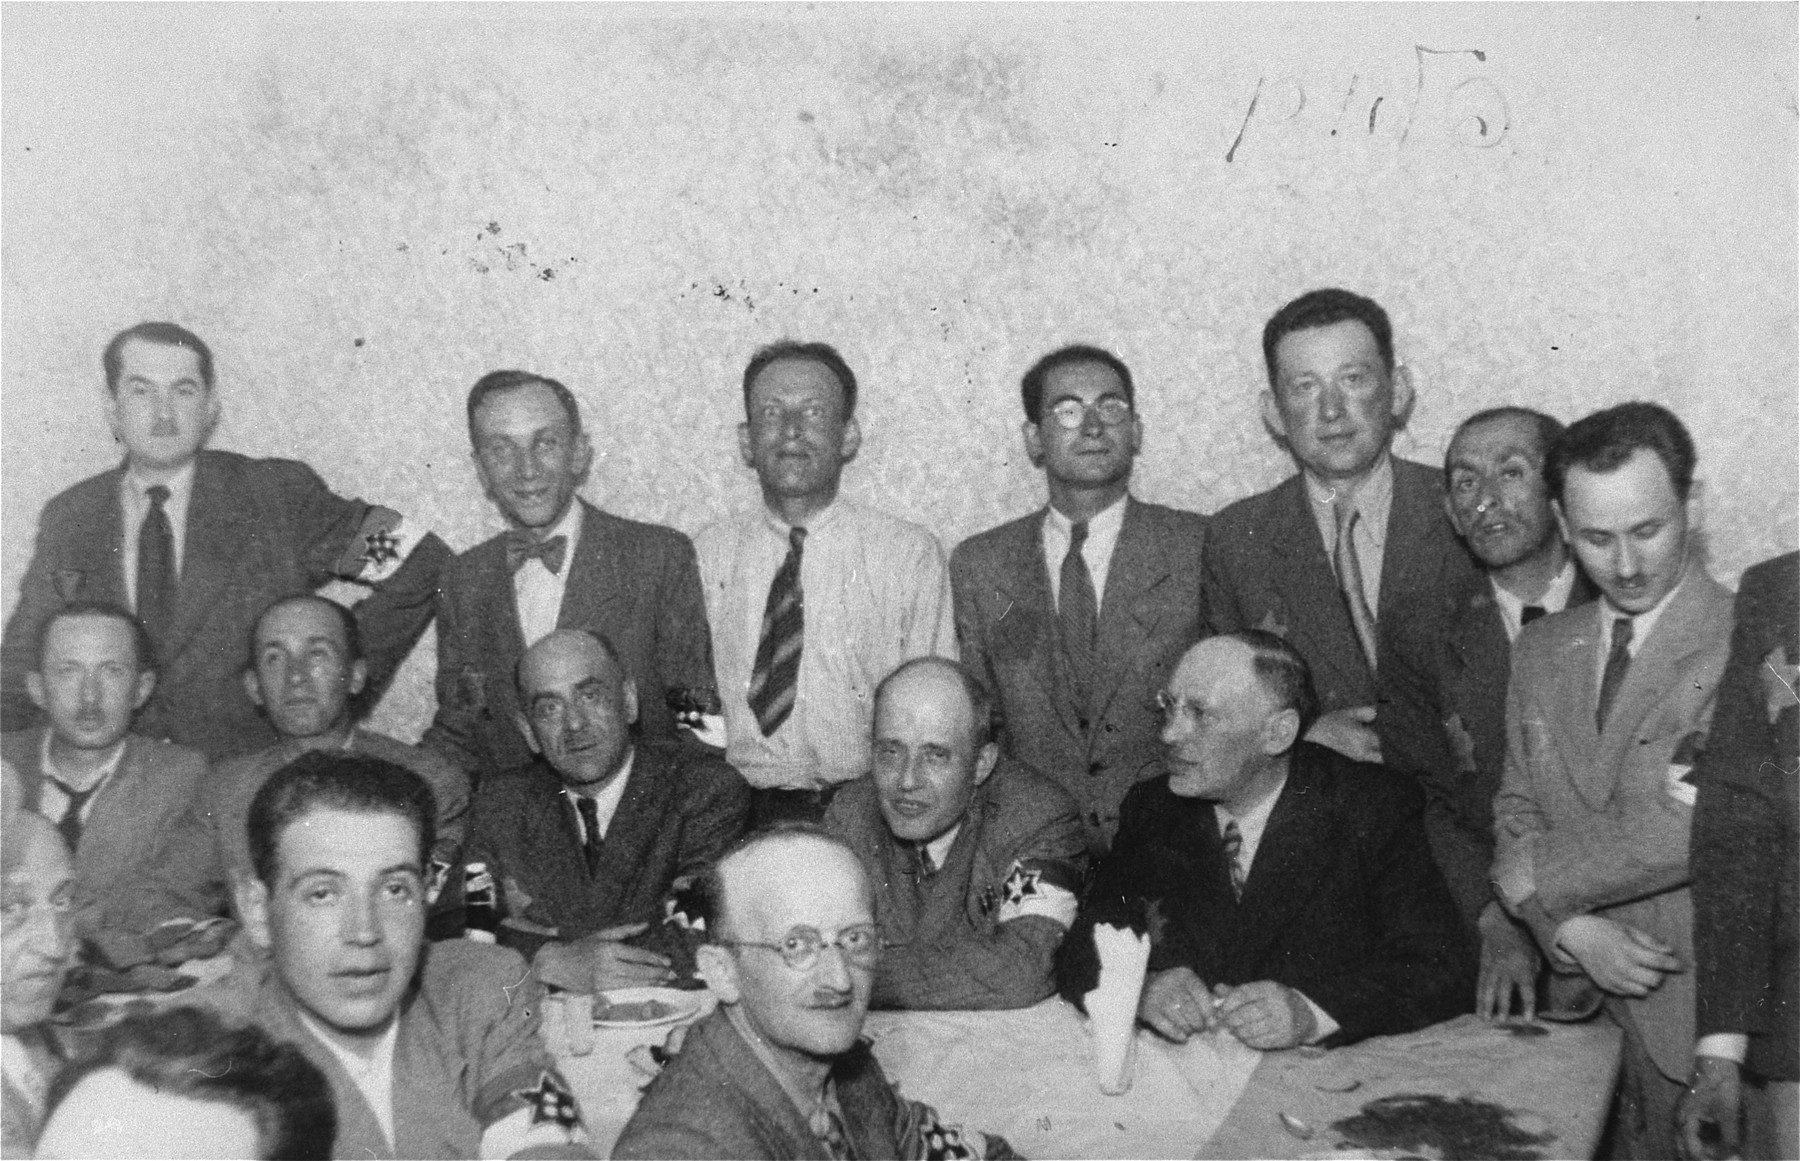 Members of the Lodz ghetto administration, including heads of workshops, police and members of the Sonderkommando, at a social gathering.  Among those pictured are: Leon Fajtlowicz, in charge of the leather workshops (standing fourth from the left), Zygmunt Reingold, director of food supply (standing fifth from the left), Baruch Praszker, chief of special assignments (standing second from the right),  Leon Rozenblatt, chief of the ghettto police (seated on the far side of the table, third from left) and David Warszawski, director of the tailoring workshops (seated on the far side of the table, first from right).